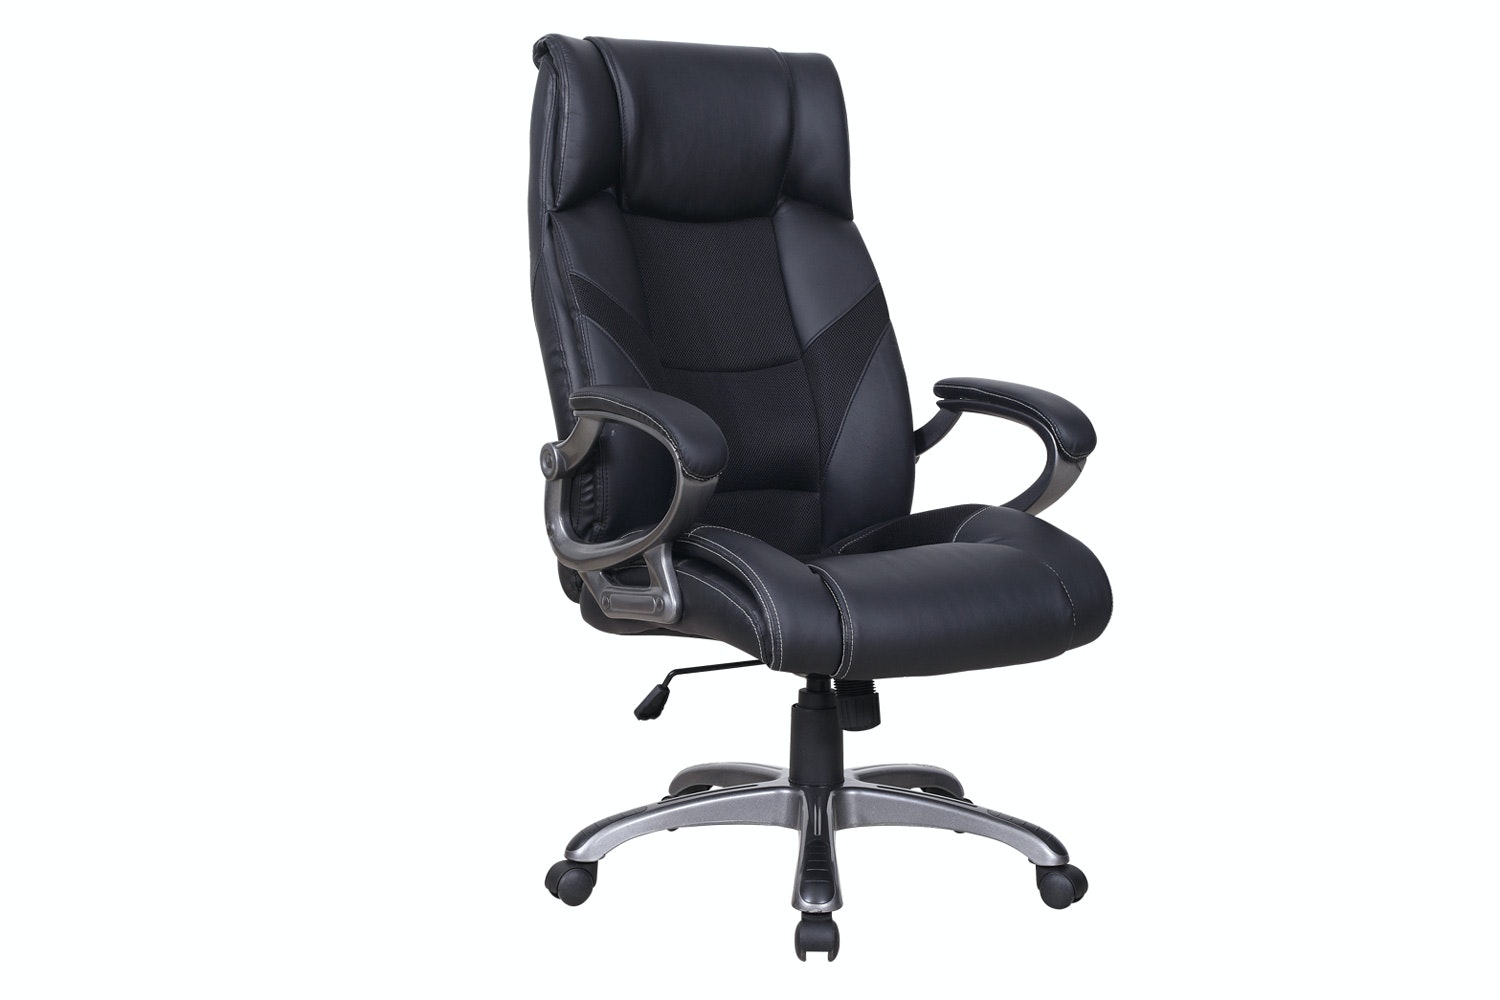 office chair material. Washington Office Chair Material G